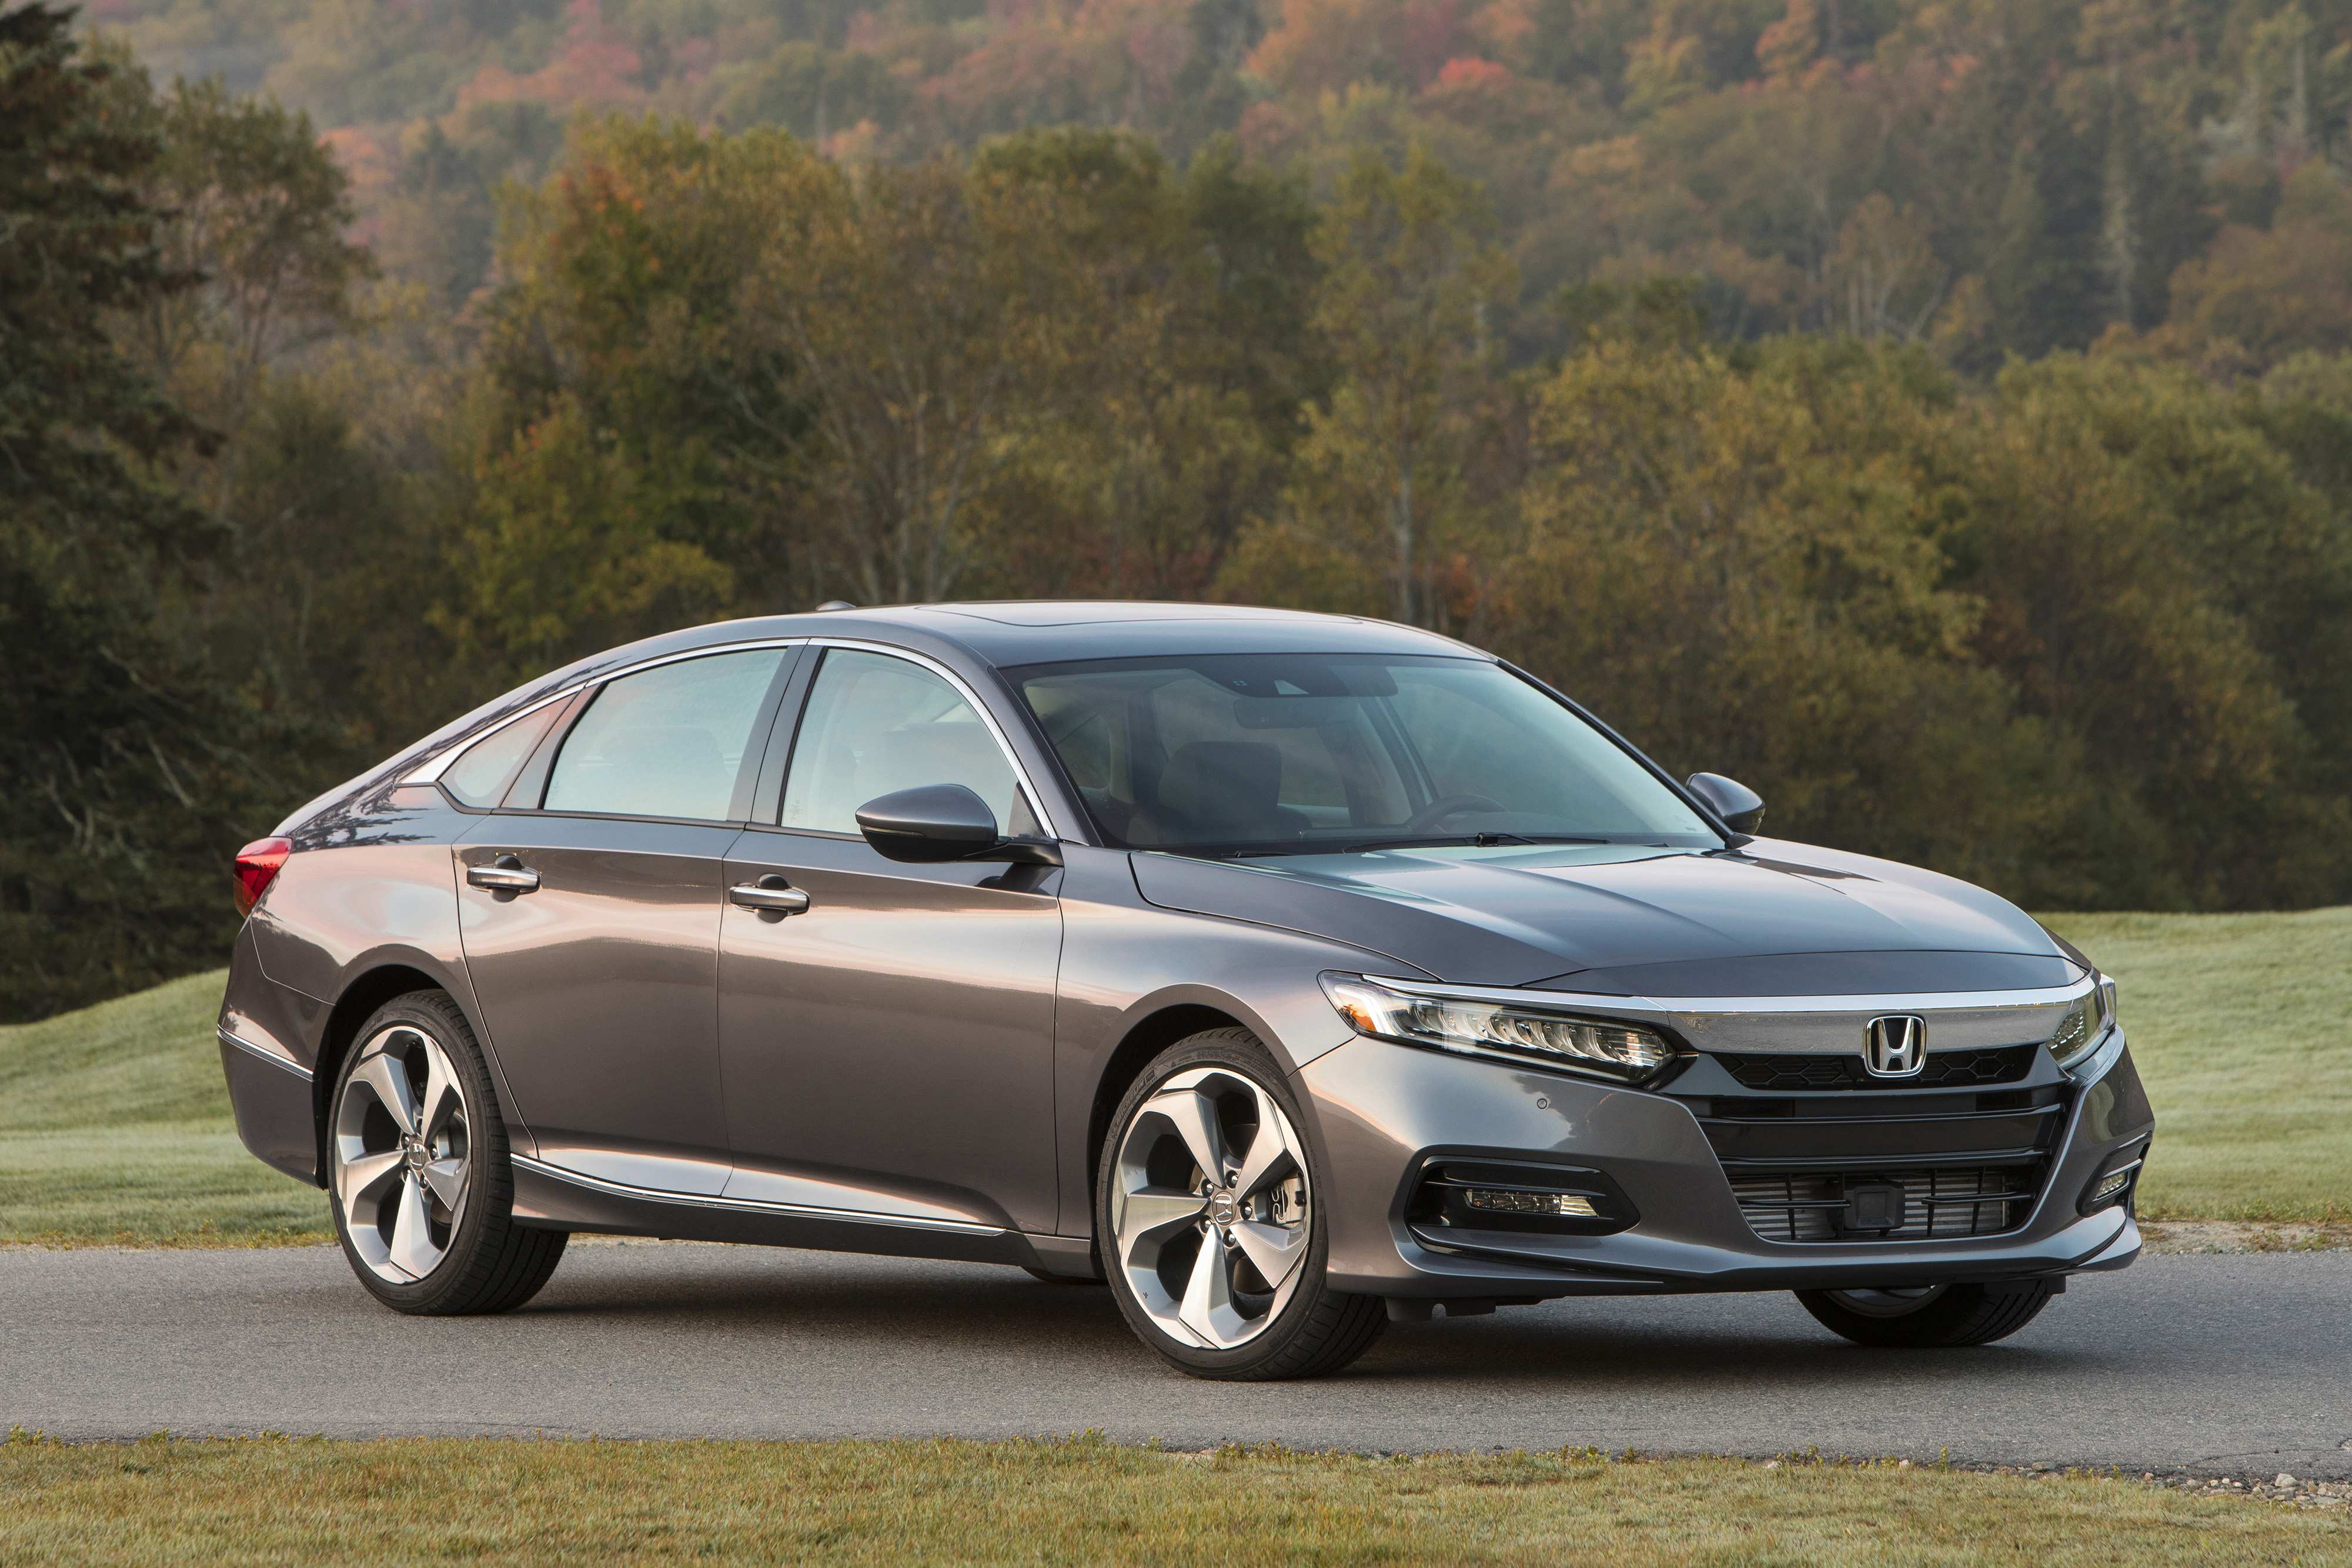 74 A Honda Accord 2020 Redesign New Model And Performance